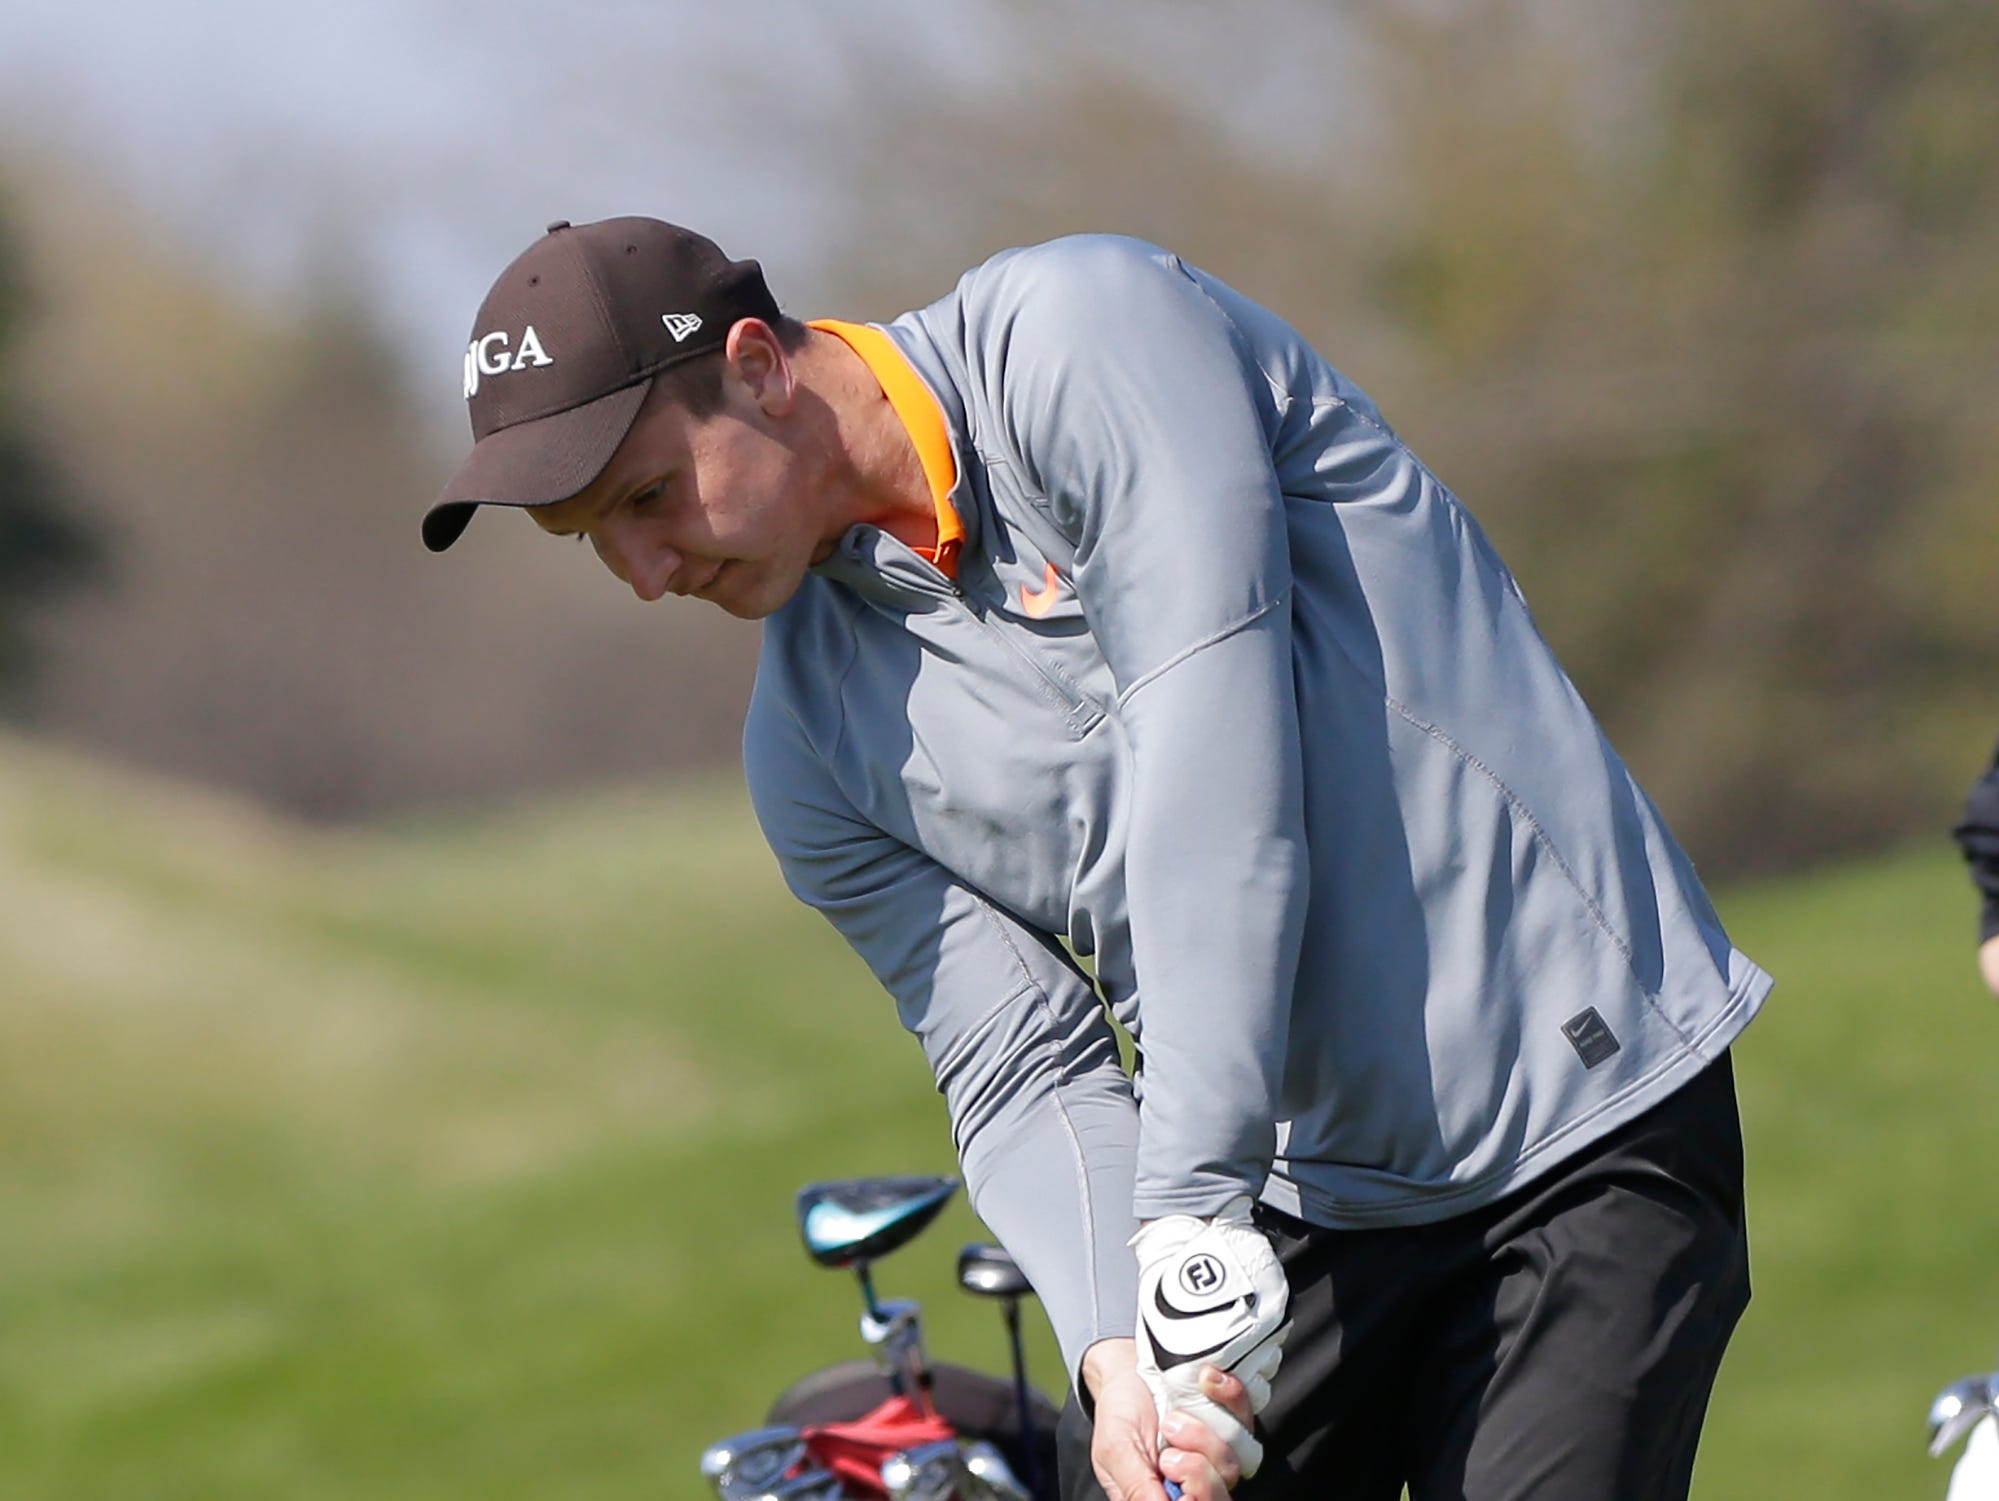 Brock Hilnak of Kaukauna High School competes in the Fond du Lac High School golf invite Saturday, May 4, 2019 at Rolling Meadows Golf Course in Fond du Lac, Wis. Doug Raflik/USA TODAY NETWORK-Wisconsin